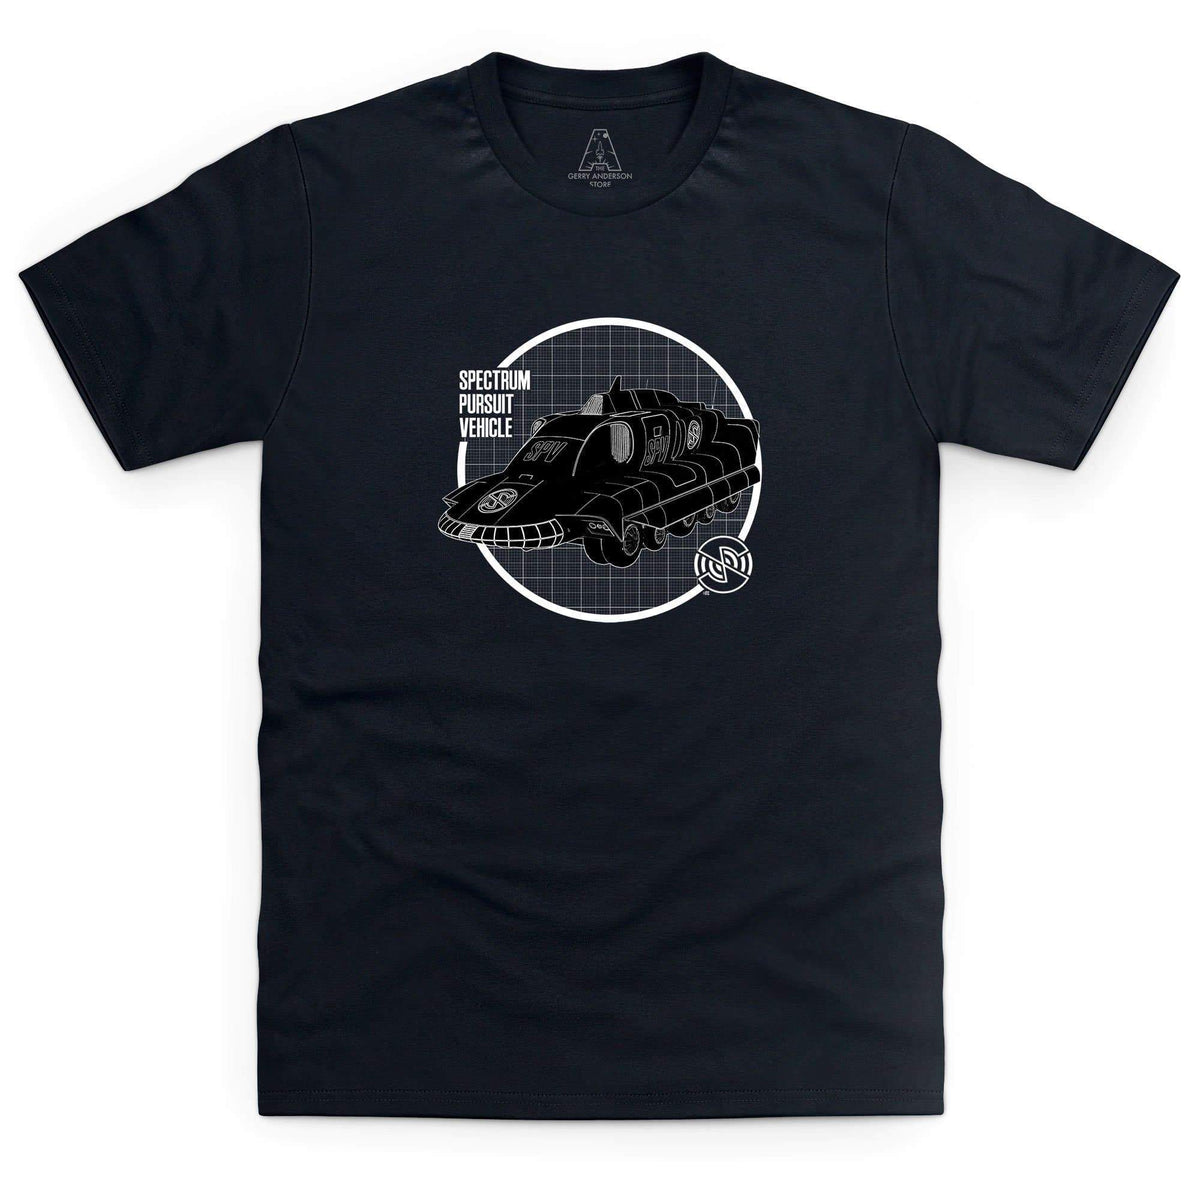 SPV Schematic Men's T-Shirt [Official & Exclusive] - The Gerry Anderson Store